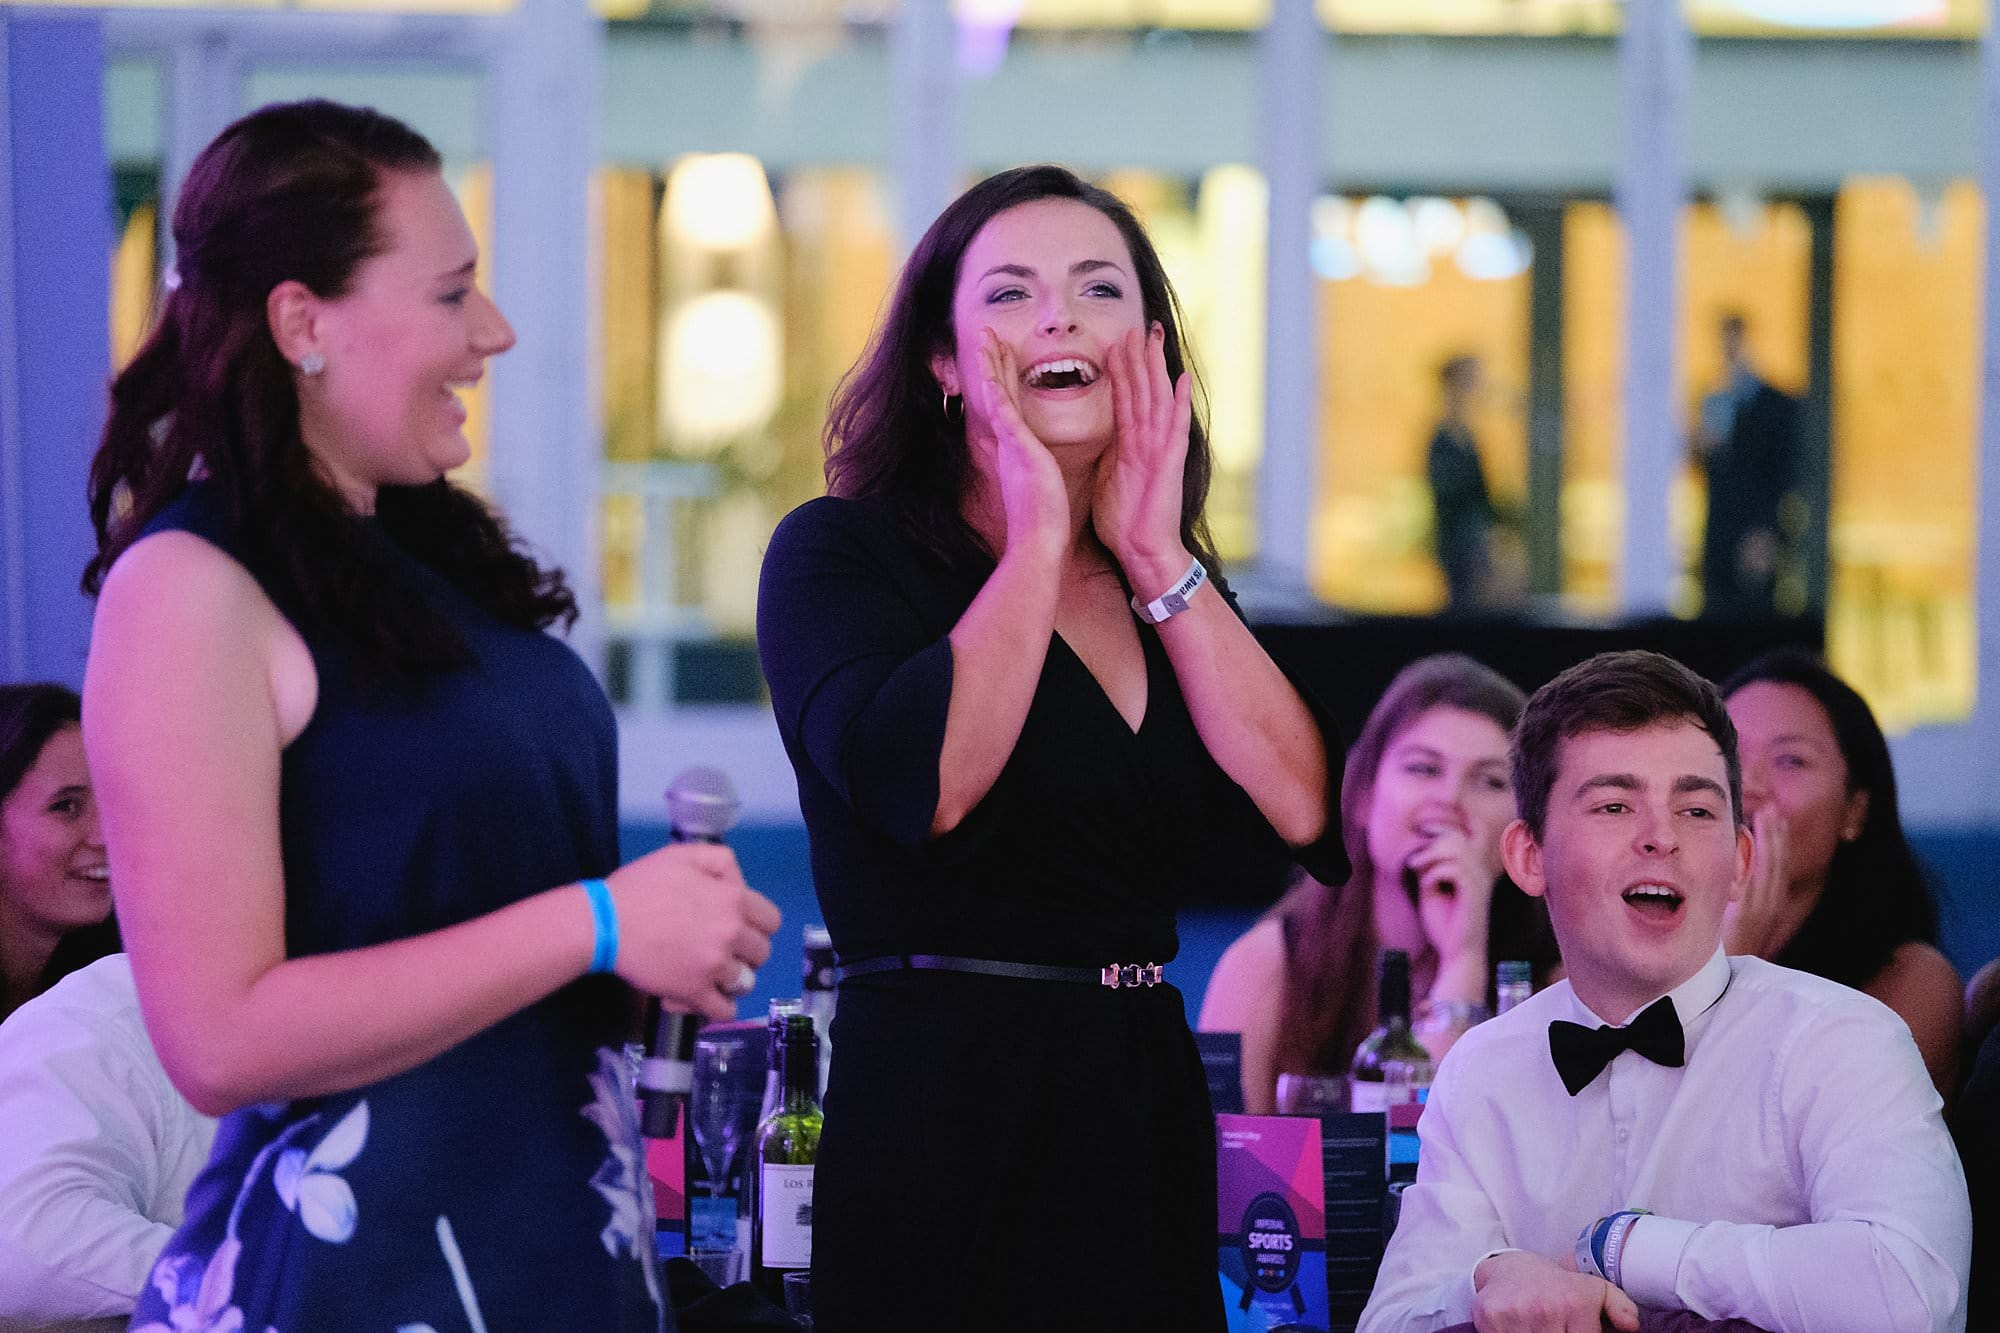 event photographer london icl 2017 019 - Imperial College London Sports Awards 2017